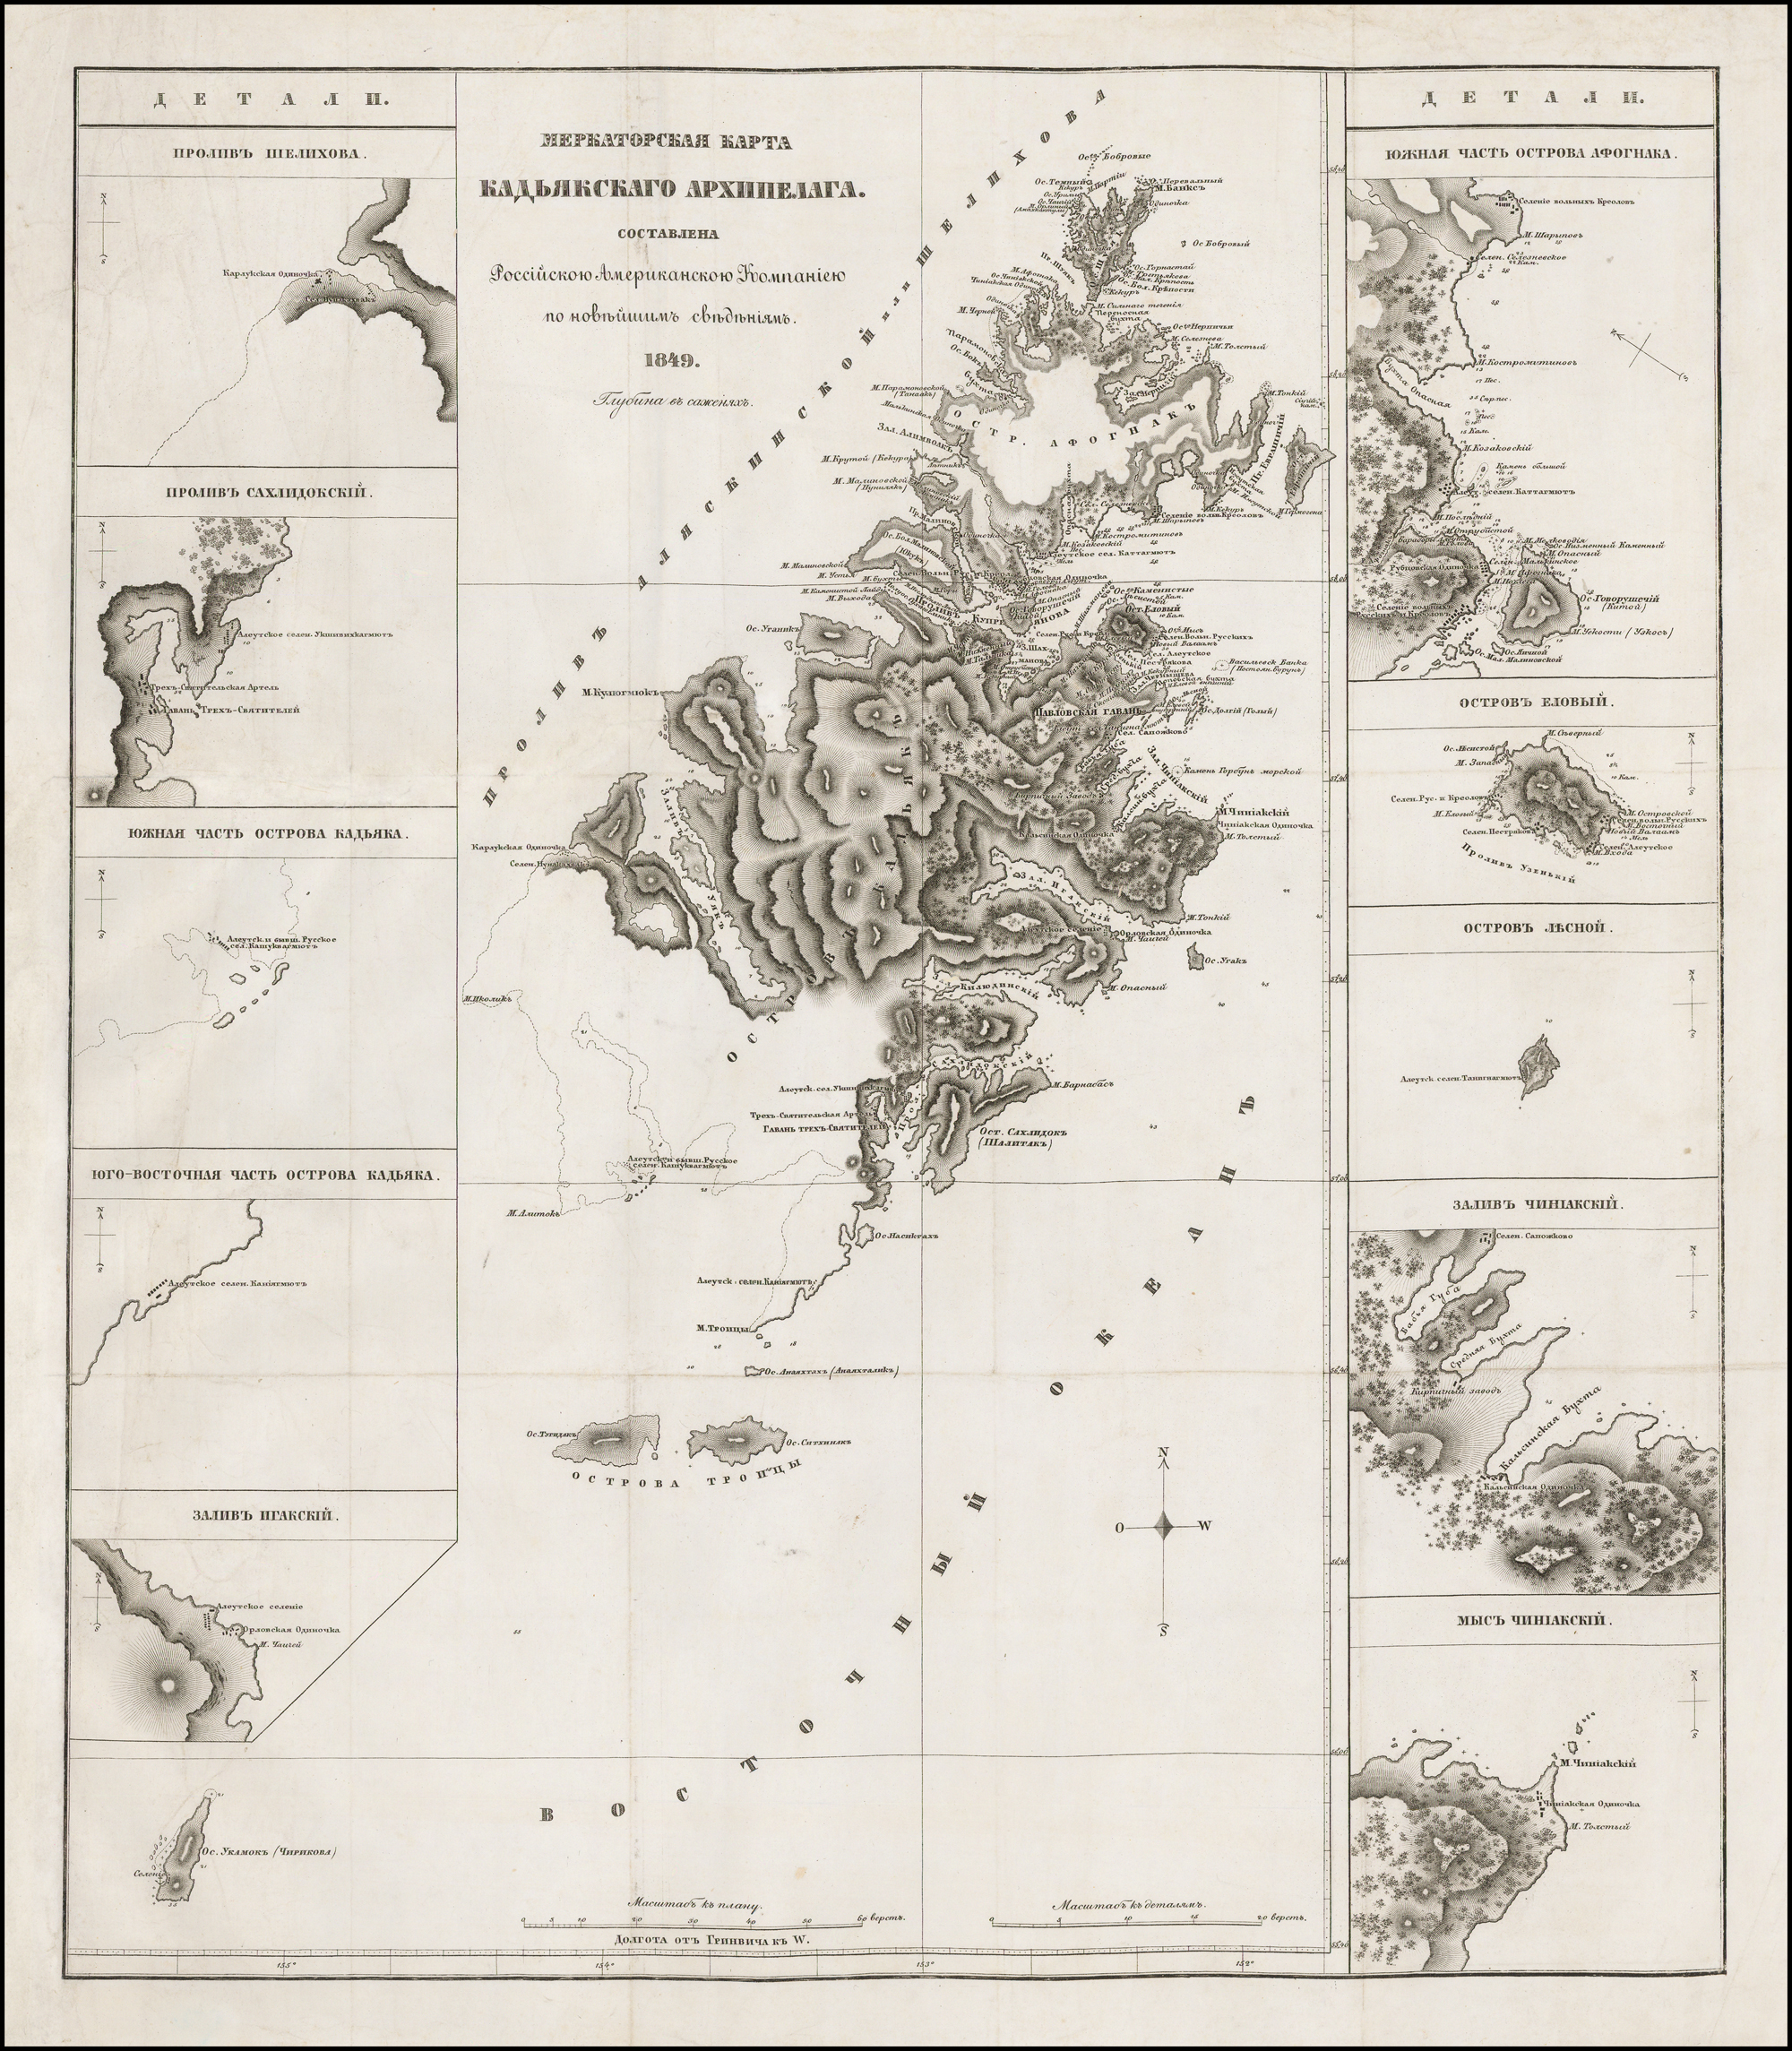 Kodiak Island] Меркатораская Карта Кадьякскаго on map of portsmouth island, map of richmond island, map of atka island, map of jackson island, map of st. paul island, map of aleutian islands, map of pribilof islands, map of raspberry island, map of wrangel island, map of faial island, map of whale island, map of shelikof strait, map of arctic national wildlife refuge, map of bremerton island, map of seward peninsula, map of prince of wales, map of ketchikan island, map of wrangell island, map of door peninsula, map of sitkalidak island,